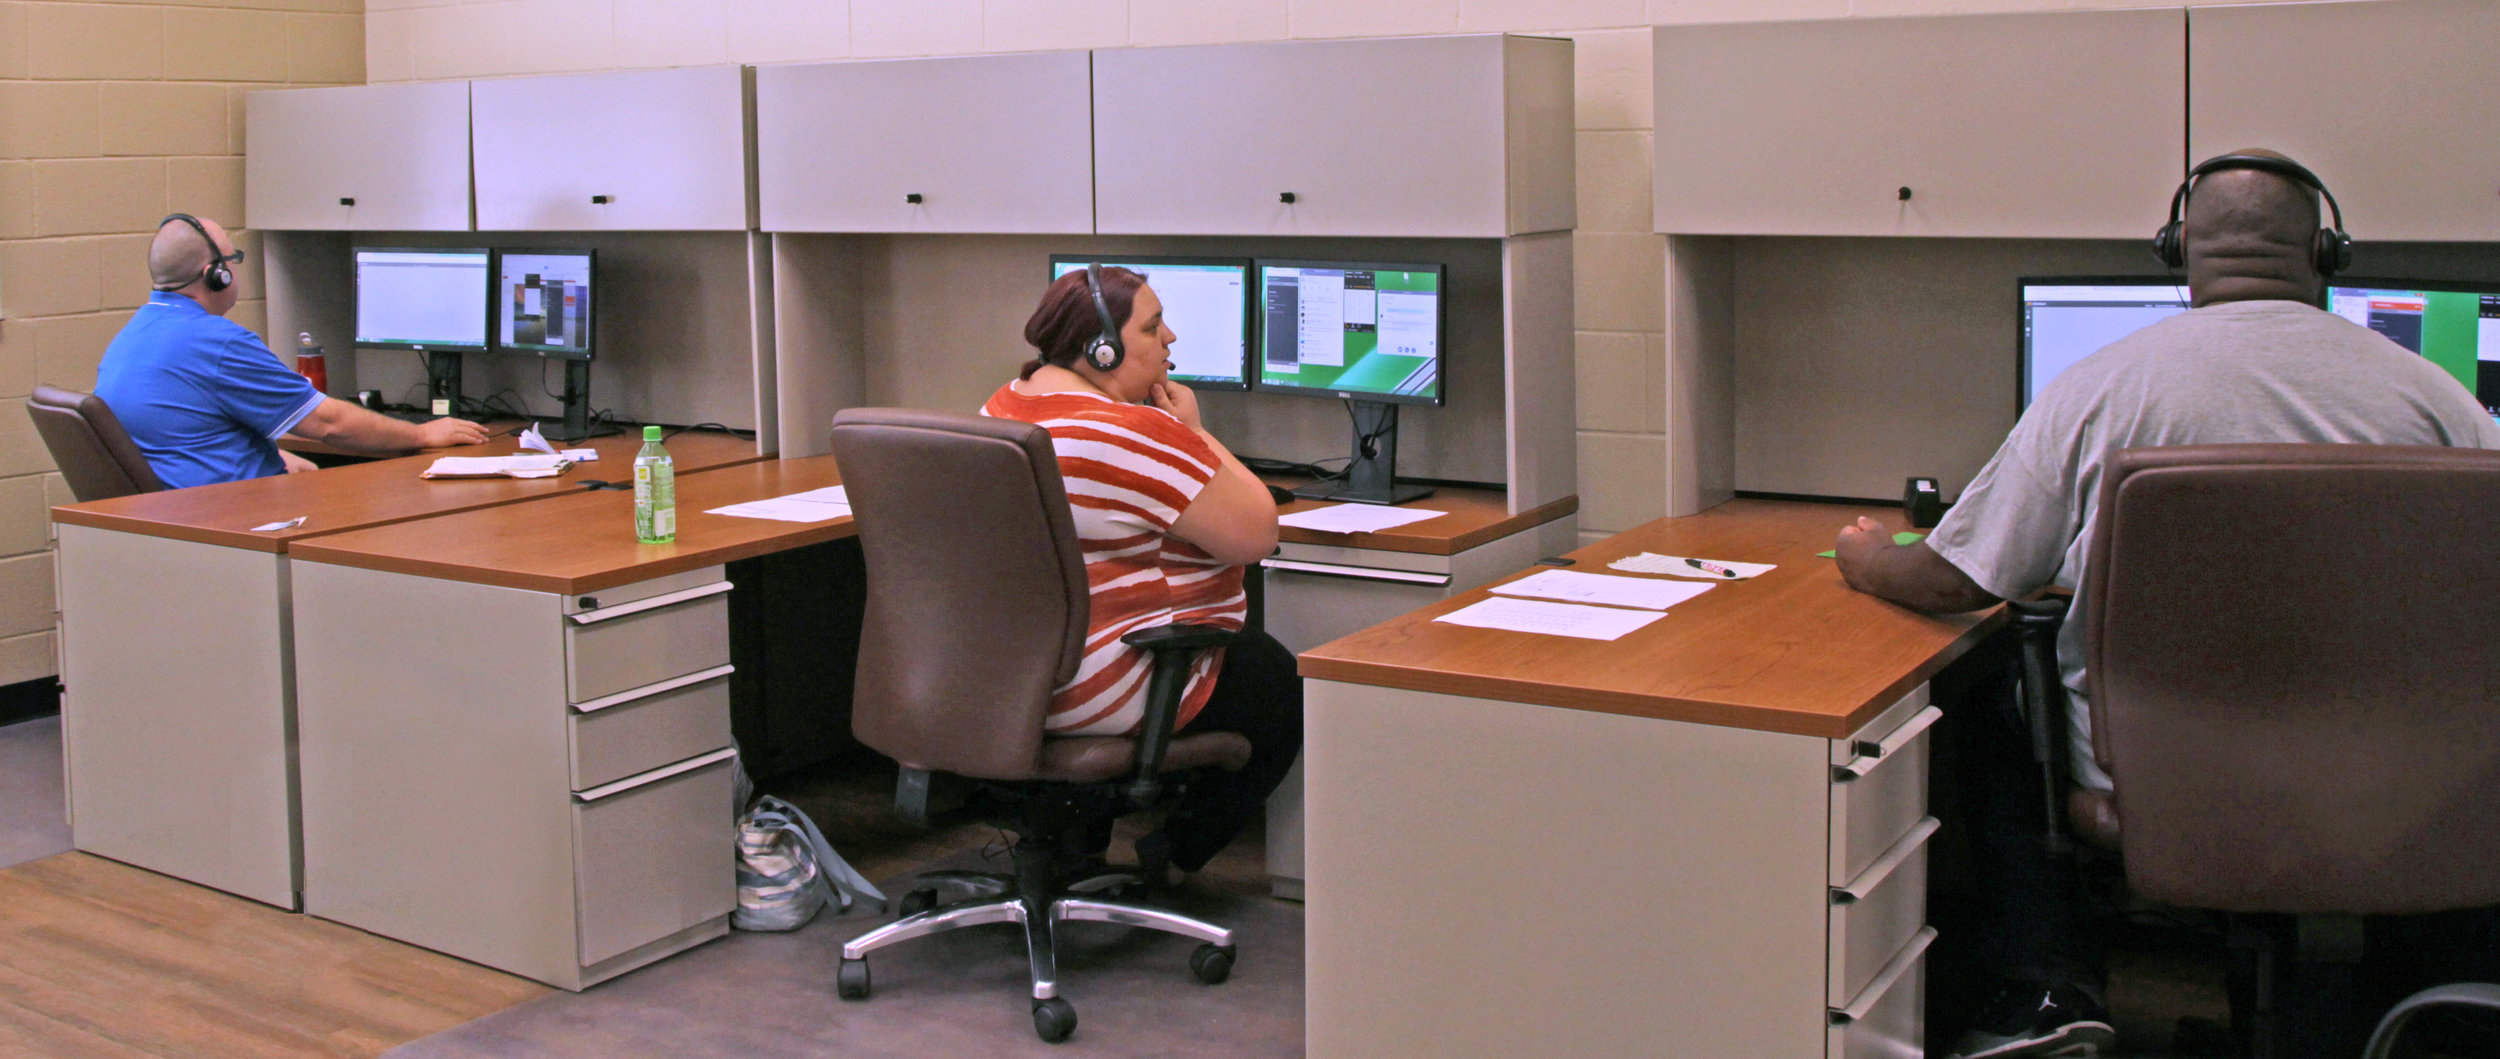 Real and simulated inbound calls are received by VR clients at the Bryant Center in Lyman as part of the training initiative with BPO American.